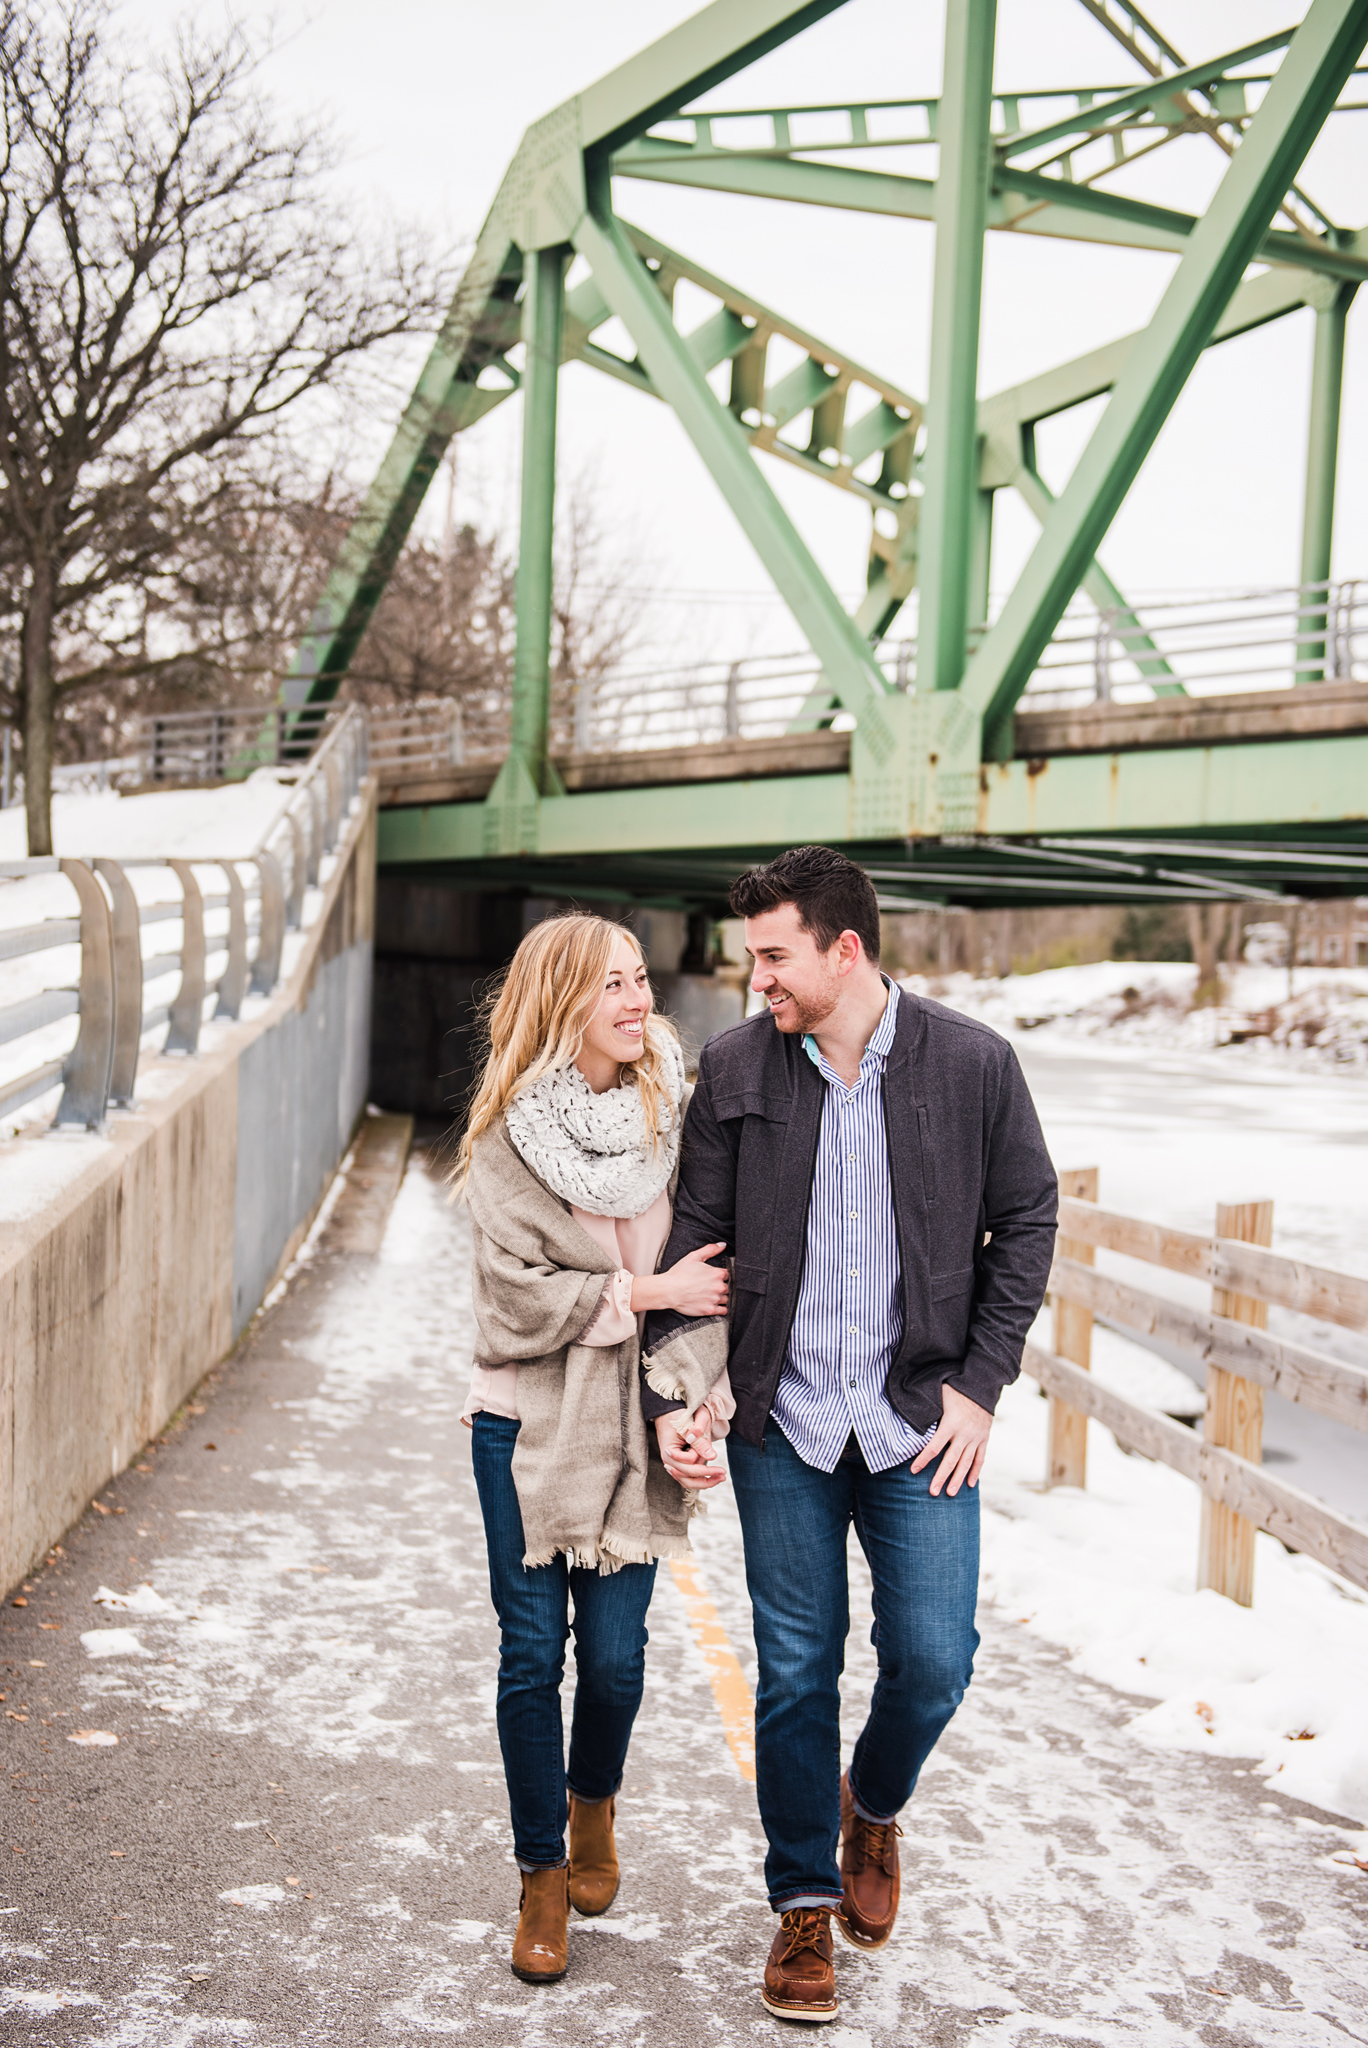 Schoen_Place_Rochester_Engagement_Session_JILL_STUDIO_Rochester_NY_Photographer_DSC_1269.jpg